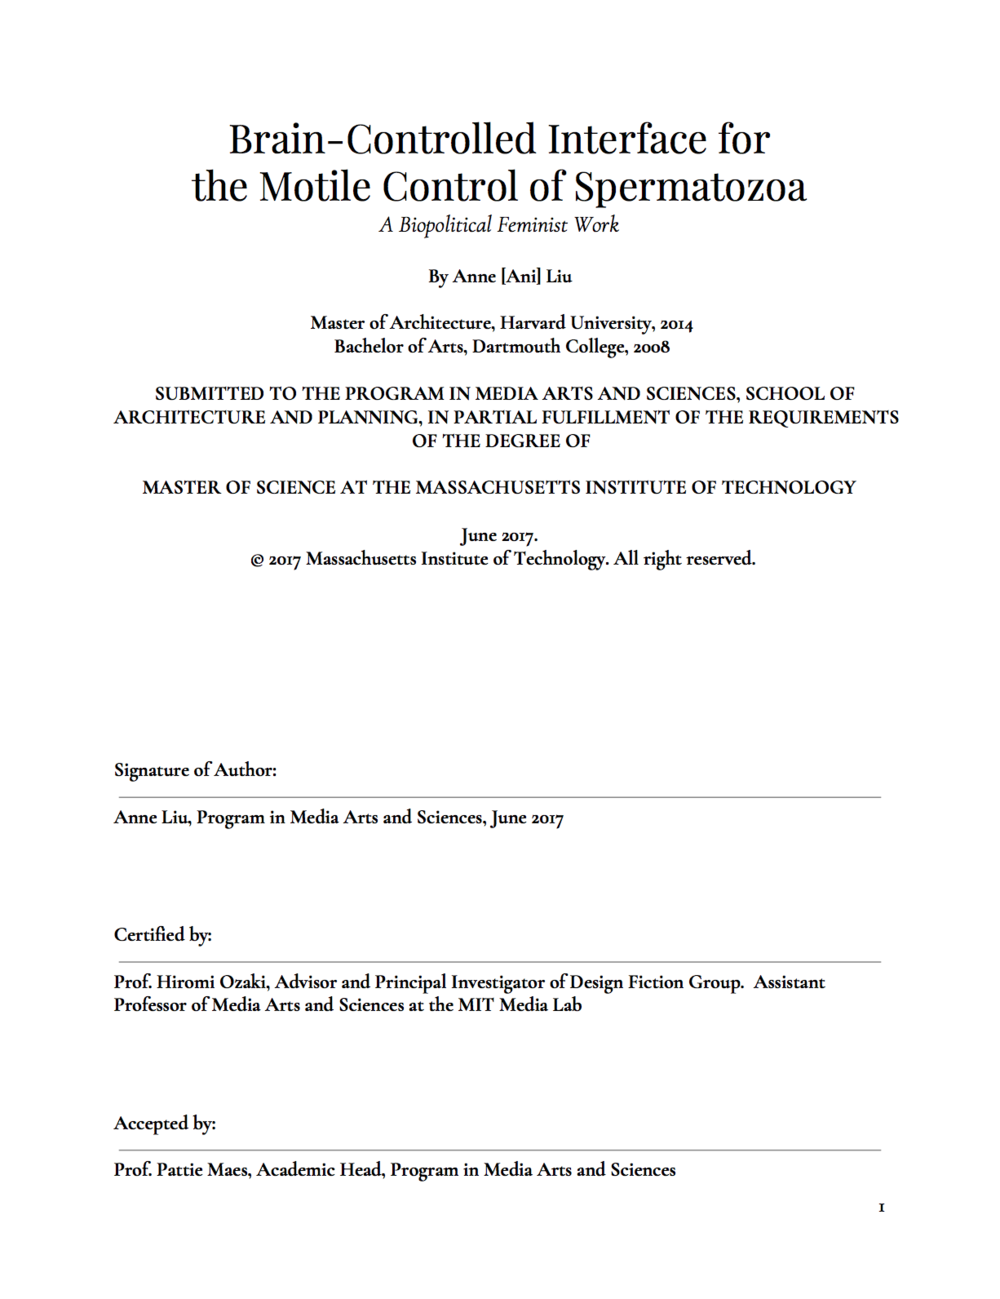 Brain-Controlled Interface for the Motile Control of Spermatozoa:  A Biopolitical Feminist Work - Master of Science Thesis 2017 at MIT Media Lab